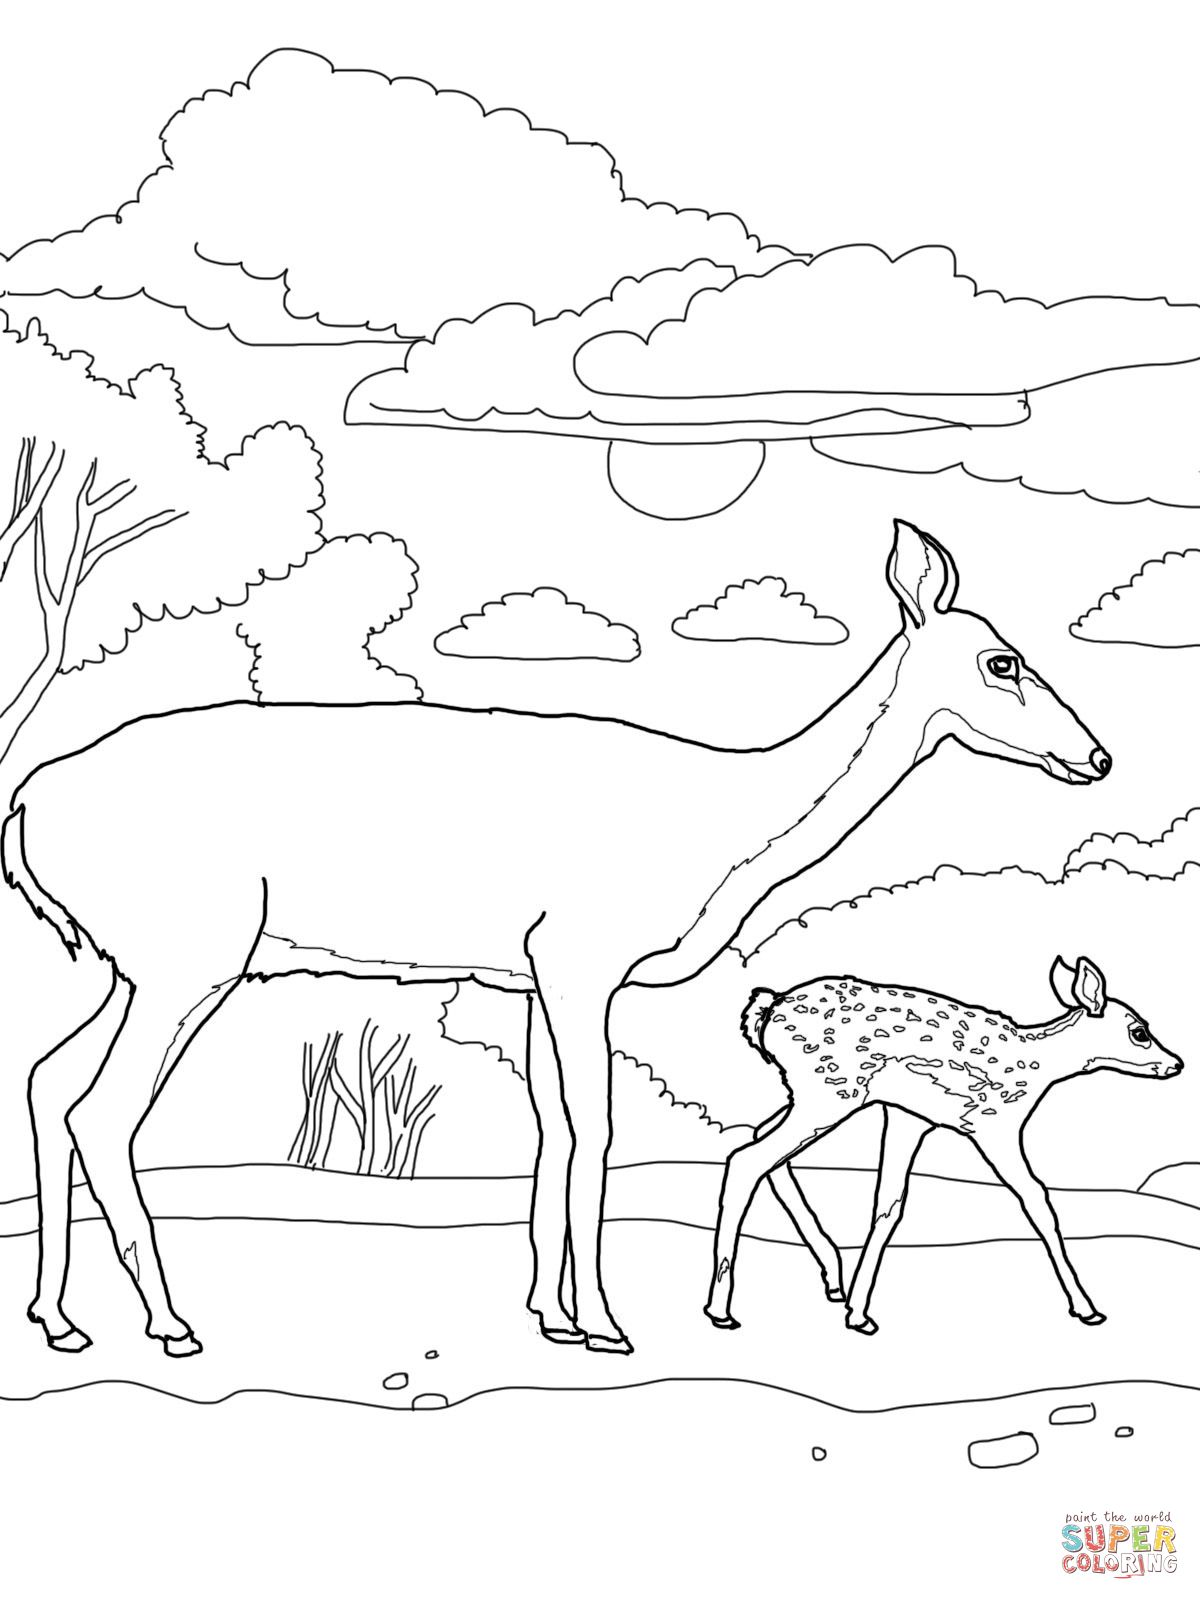 White Tailed Deers Coloring Pages Supercoloring Com Deer Coloring Pages Horse Coloring Pages Animal Coloring Pages